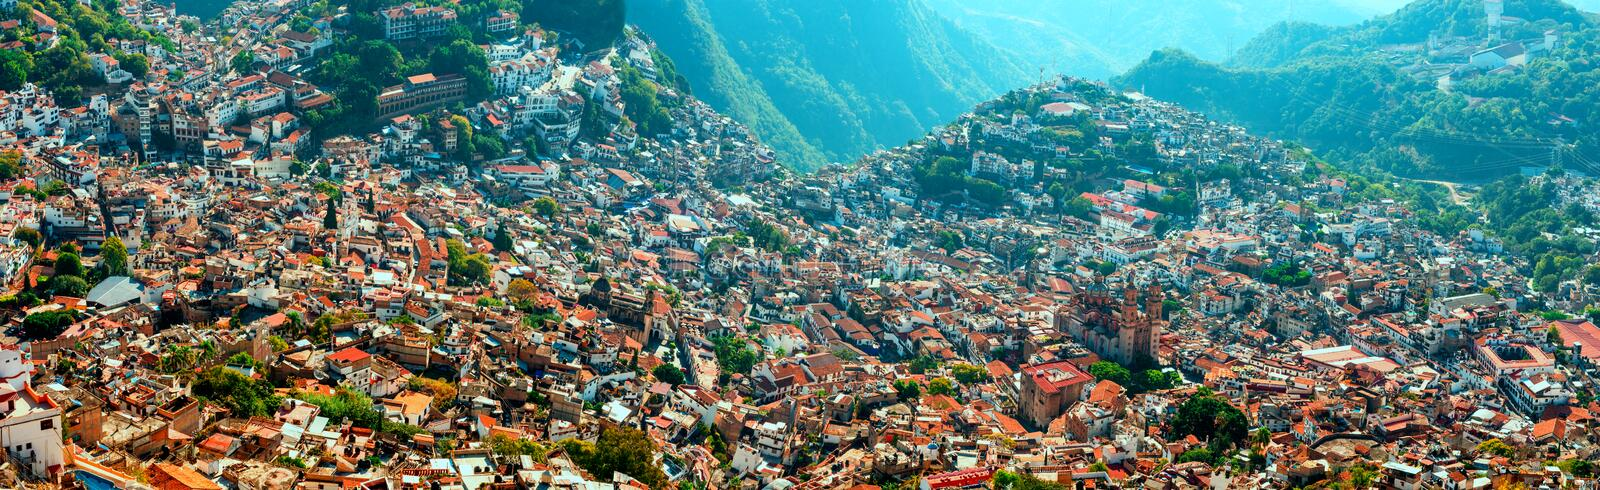 Aerial view of Taxco, Guerrero, Mexico royalty free stock photo